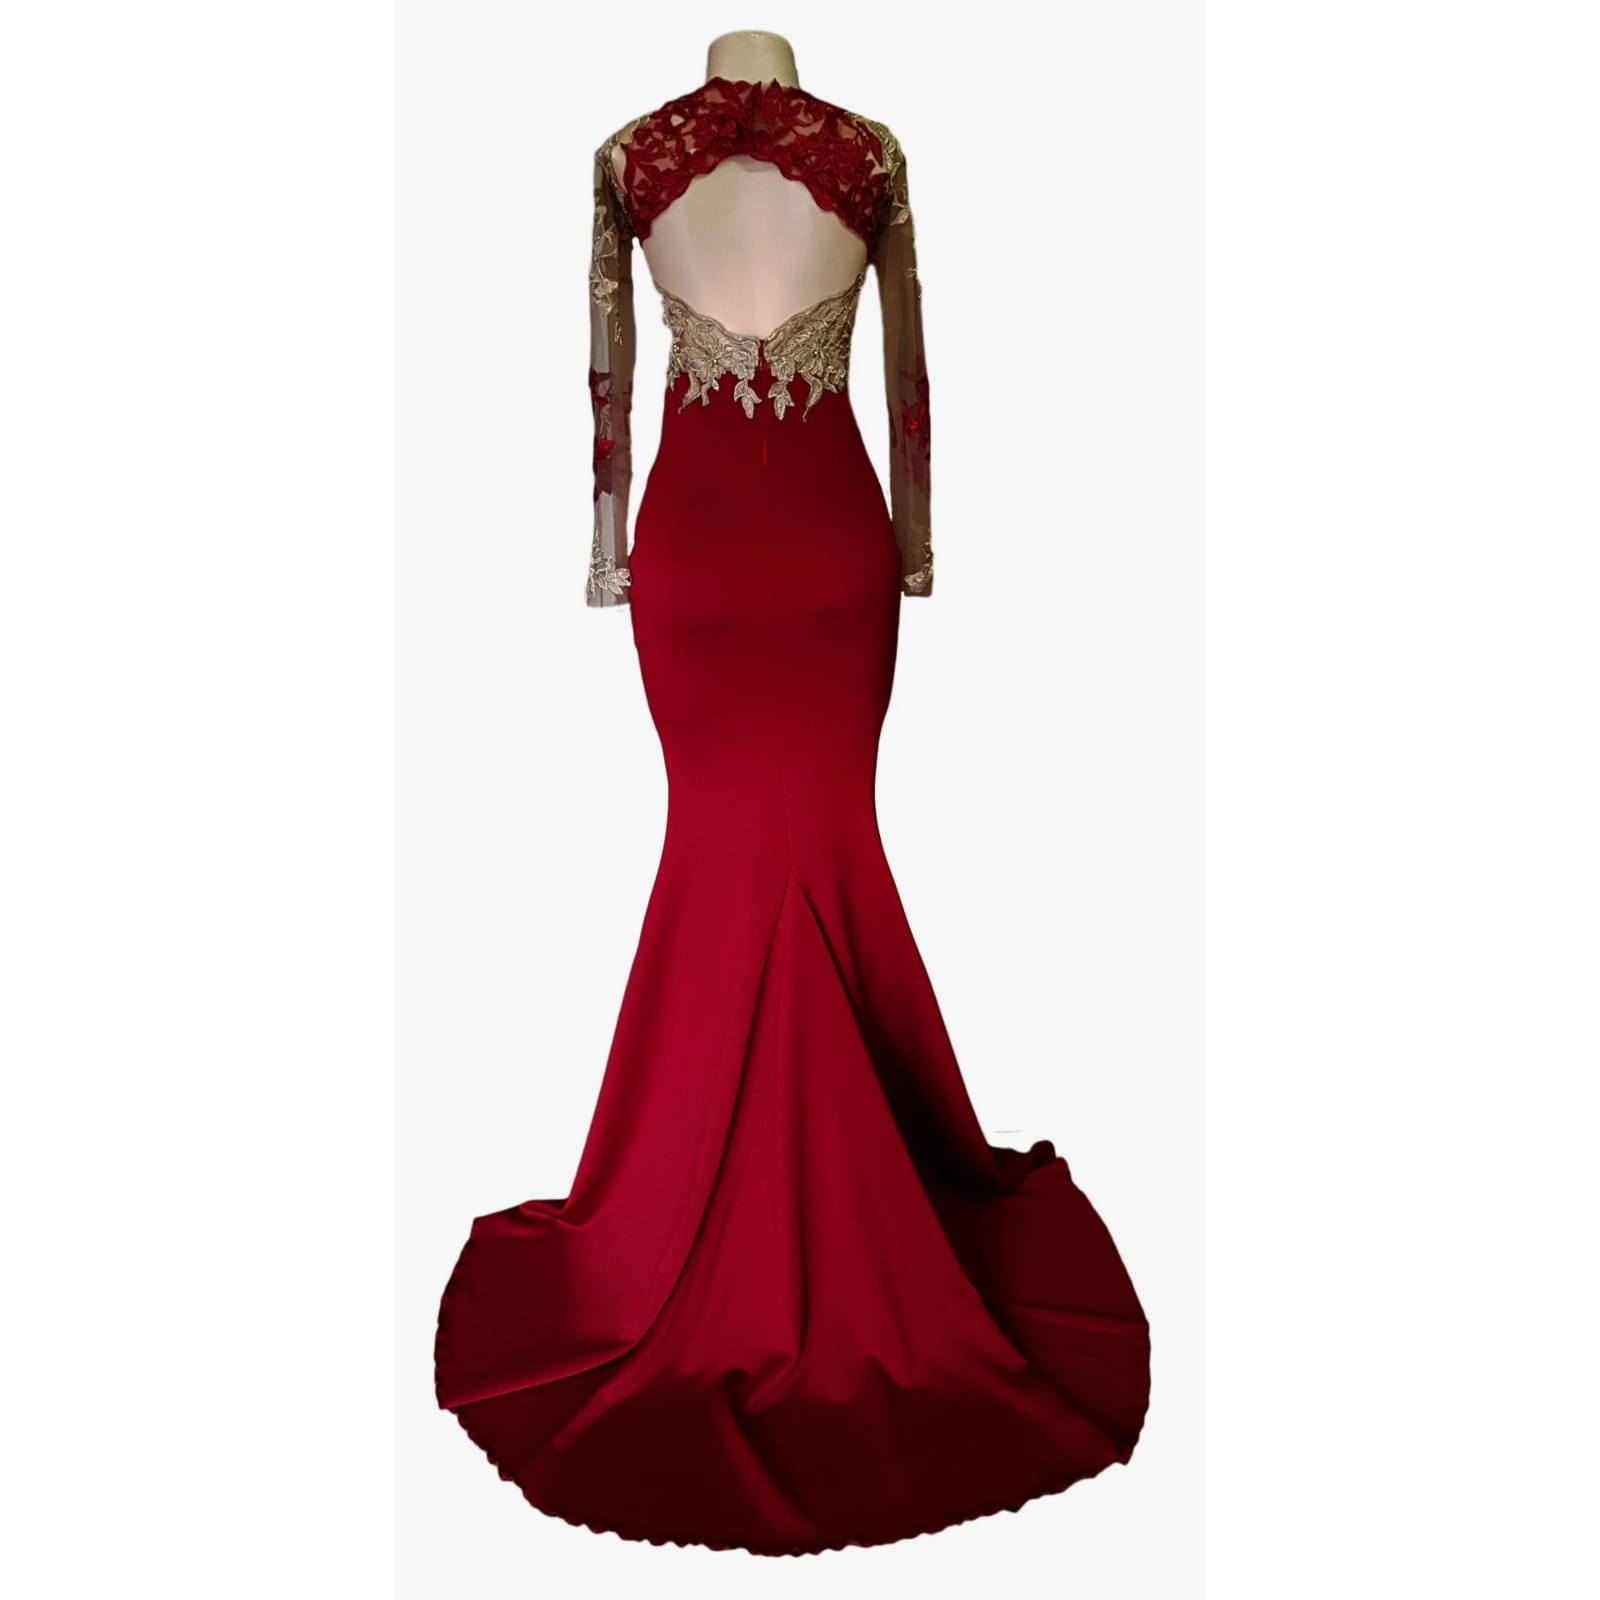 Red and gold lace soft mermaid matric dance dress 9 red and gold lace soft mermaid matric dance dress, illusion lace bodice and sleeves with a diamond shaped open back and a train.